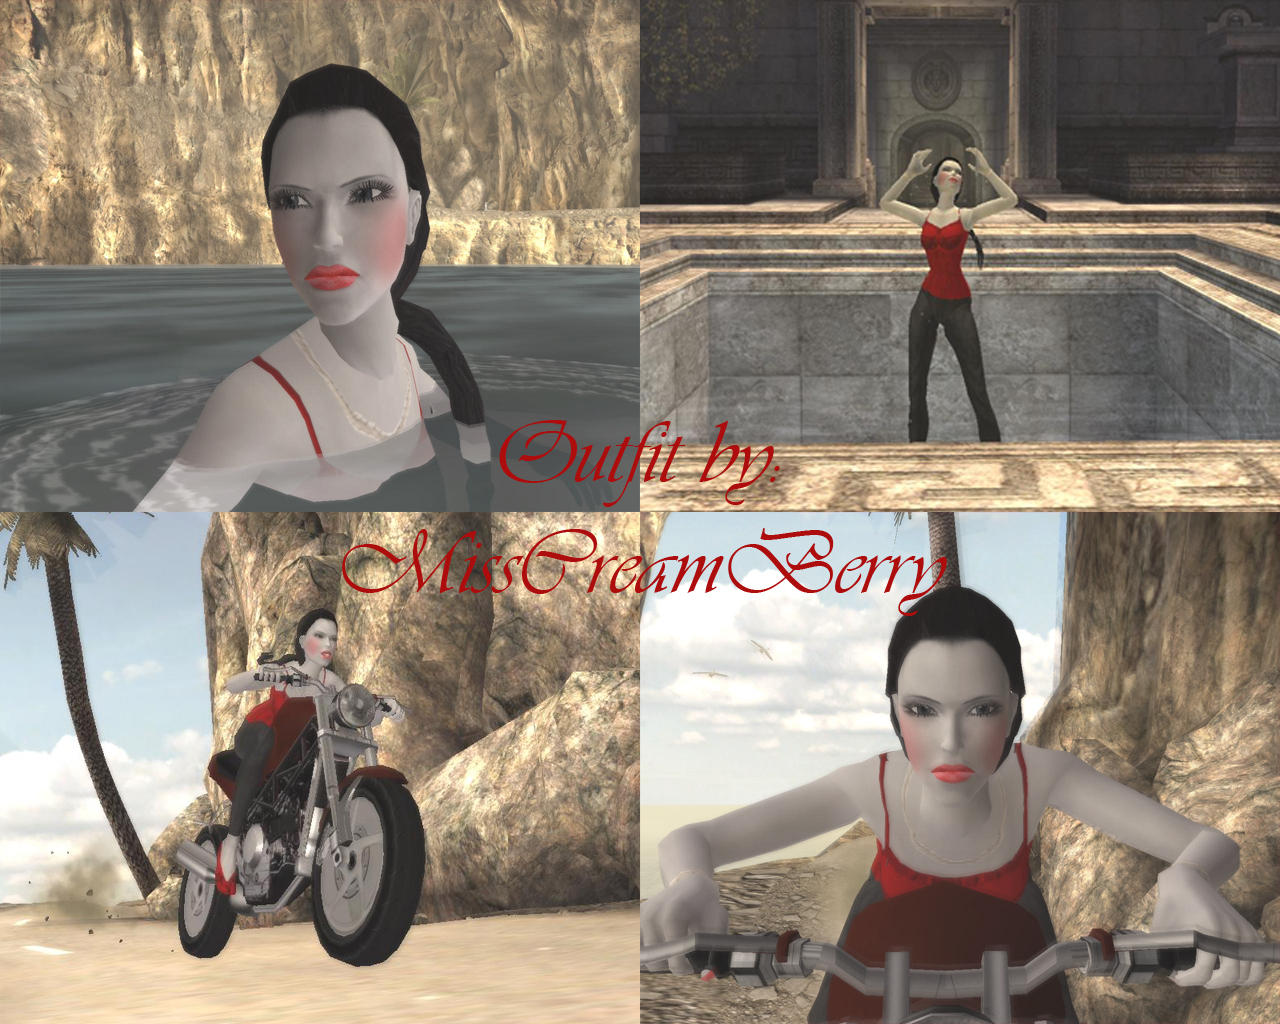 Tomb raider 2023 outfits fucked scenes